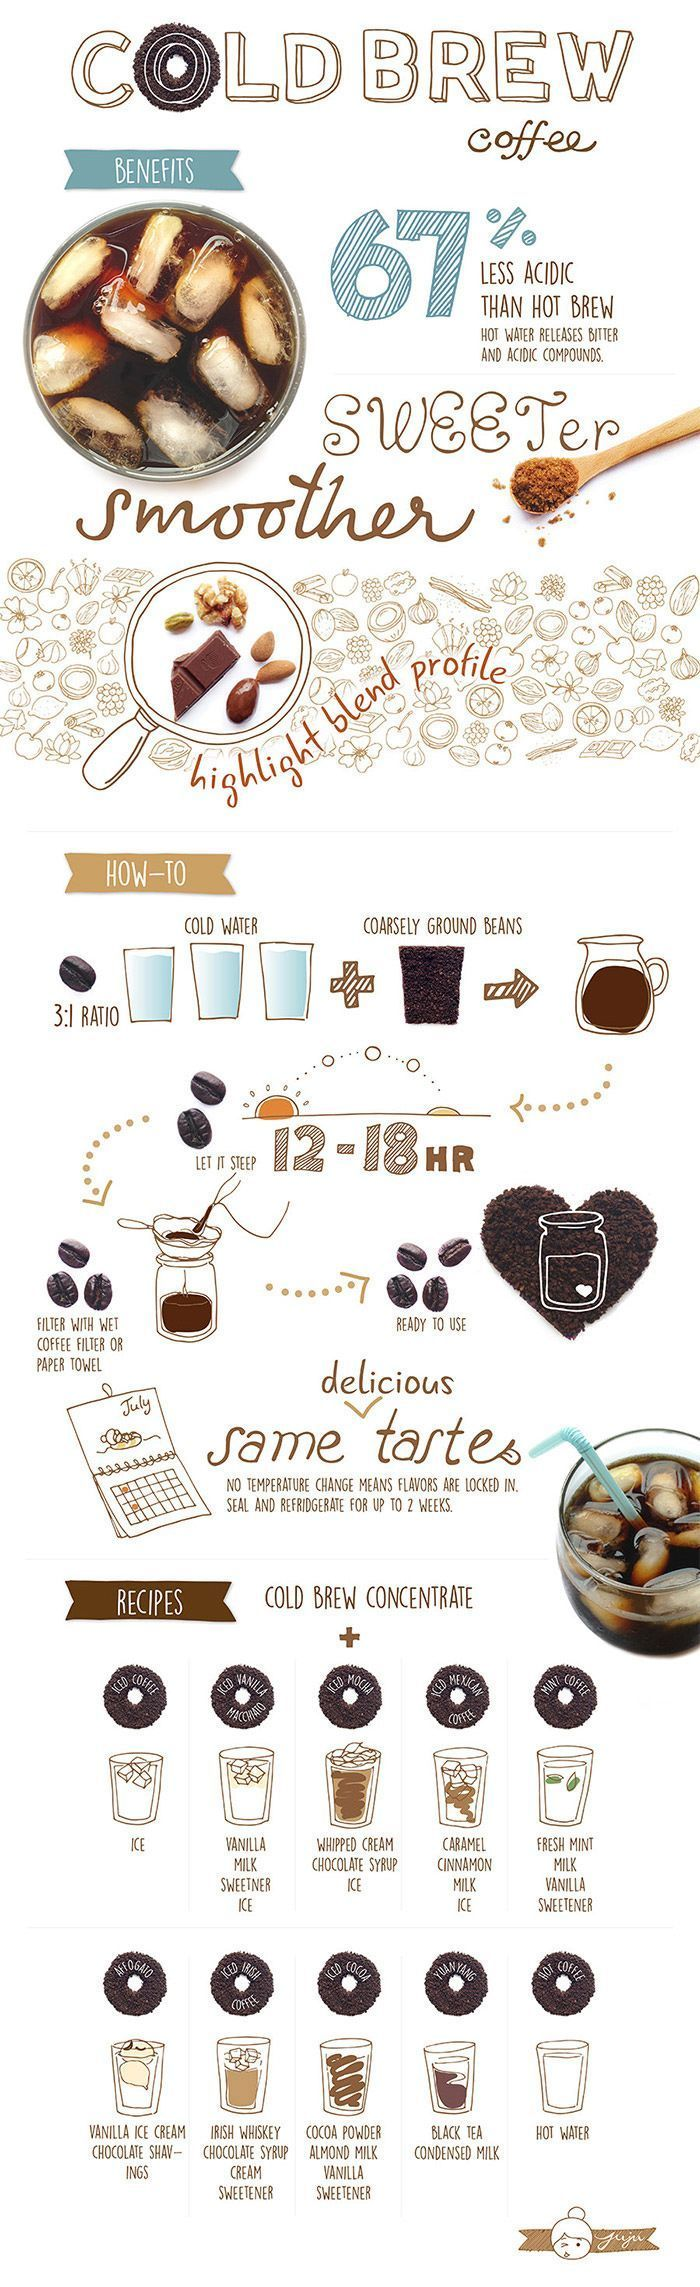 Awesome Cold Brew Infographic  50 Recipe Infographics to Help Make You a Better Cook